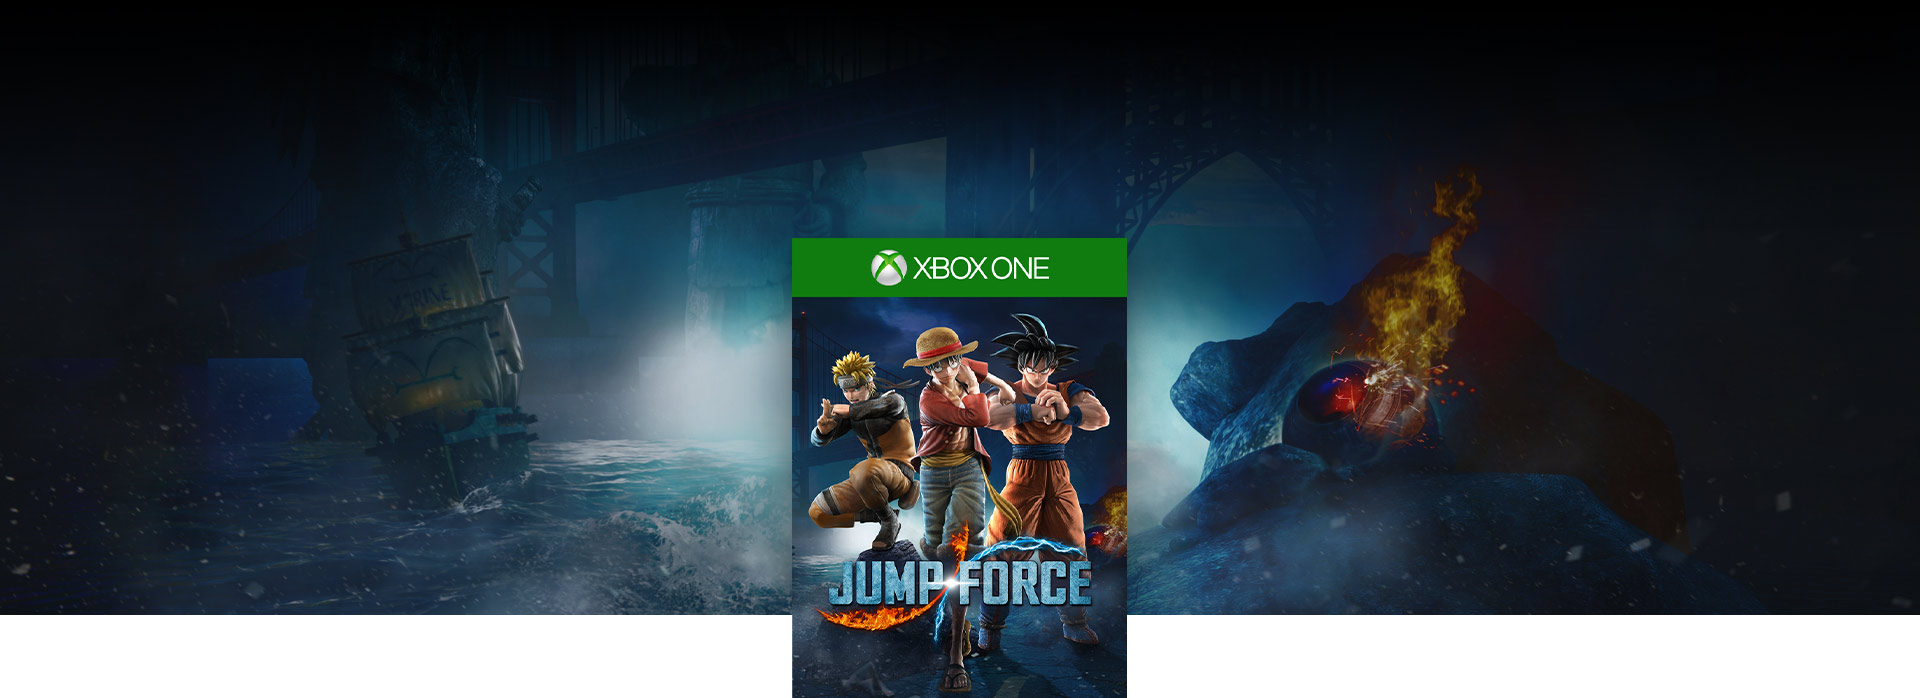 Jump Force box shot, with a dark scene of destruction beneath the Golden Gate Bridge